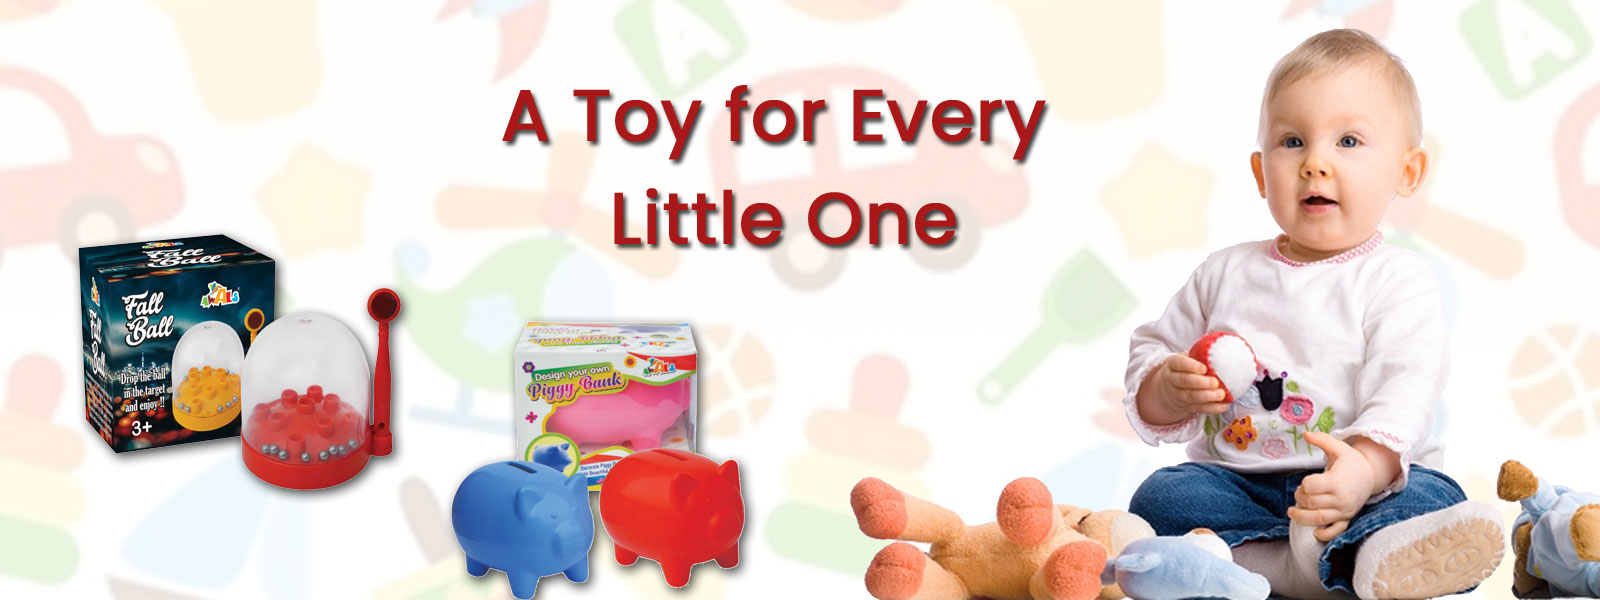 A Toy For Every Little One Manufacturers